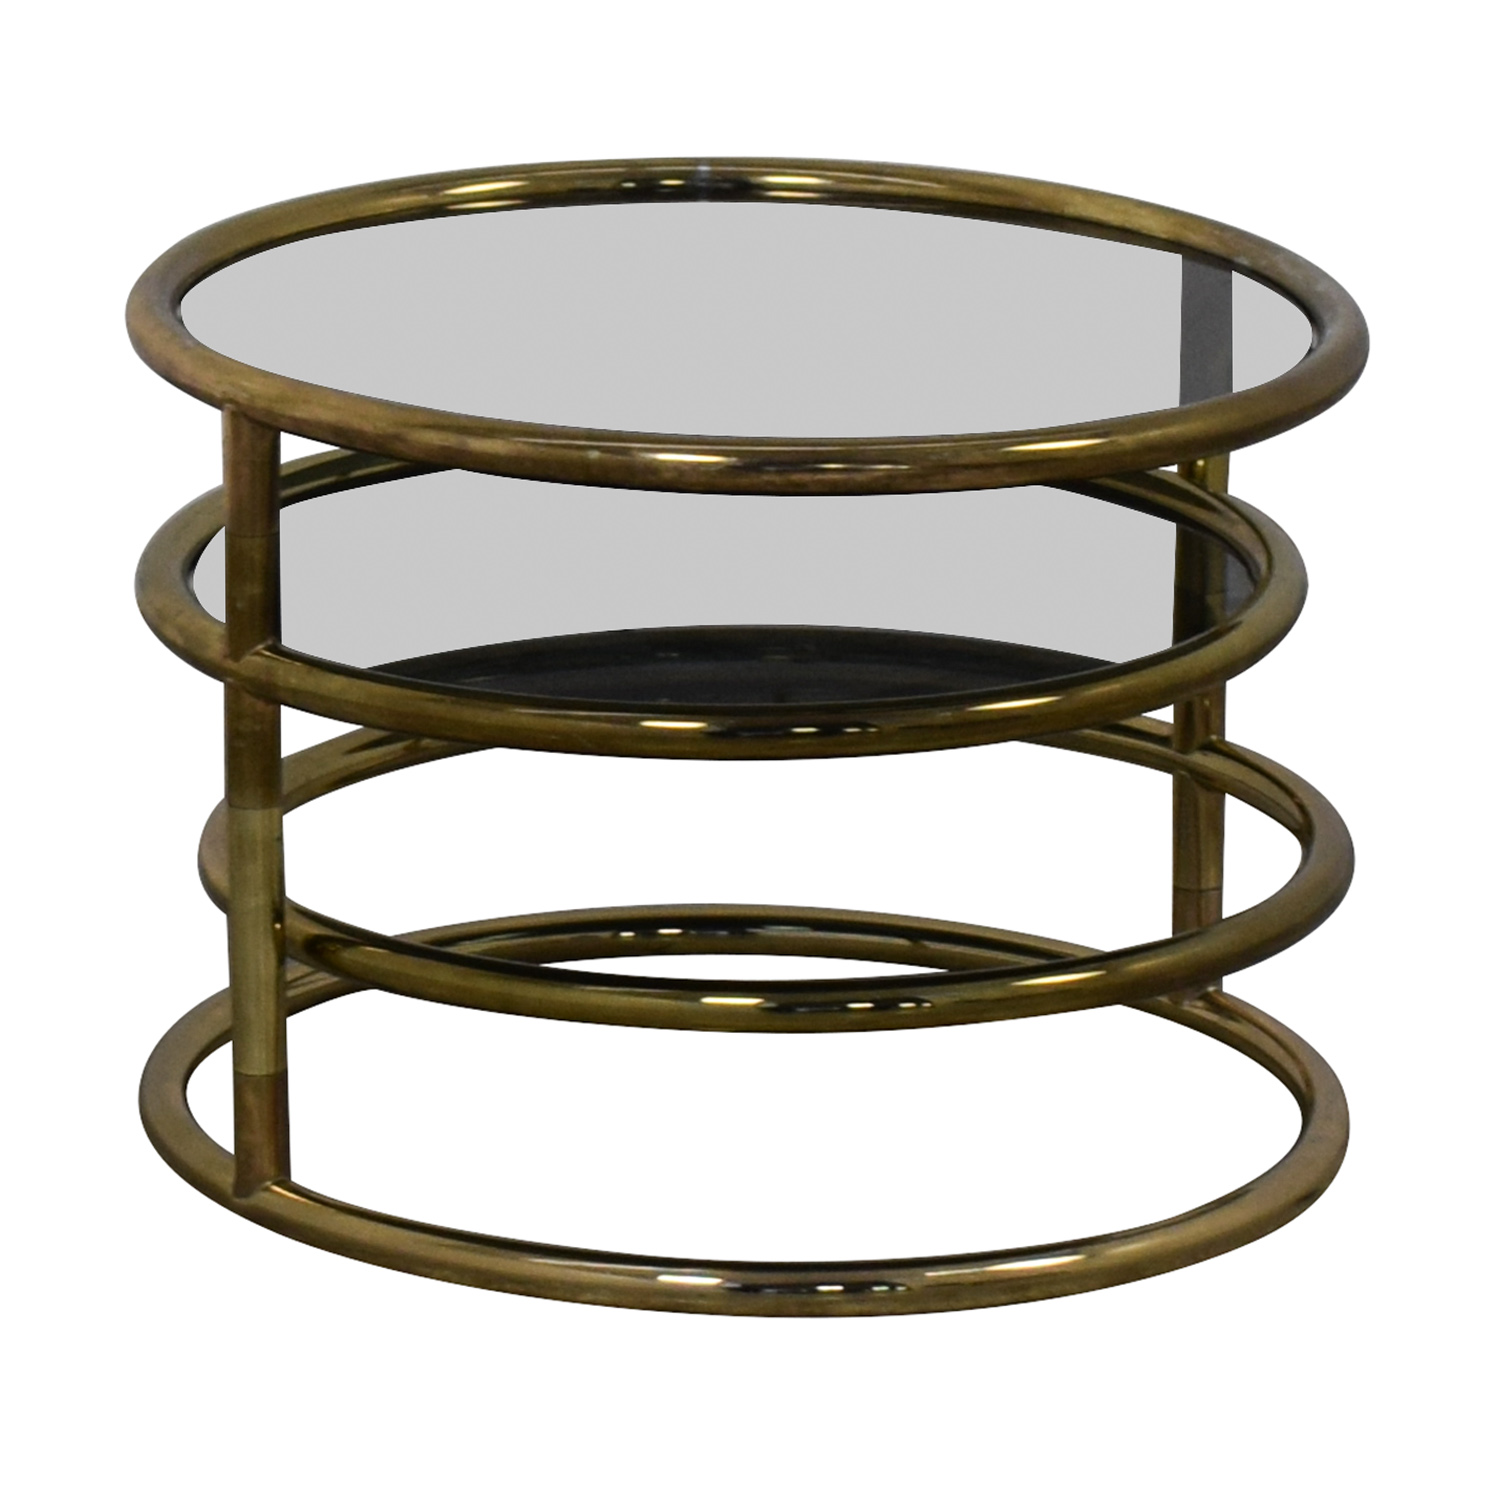 buy Mid-Century Three-Tier Brass Plated Swing Cocktail Table  Accent Tables